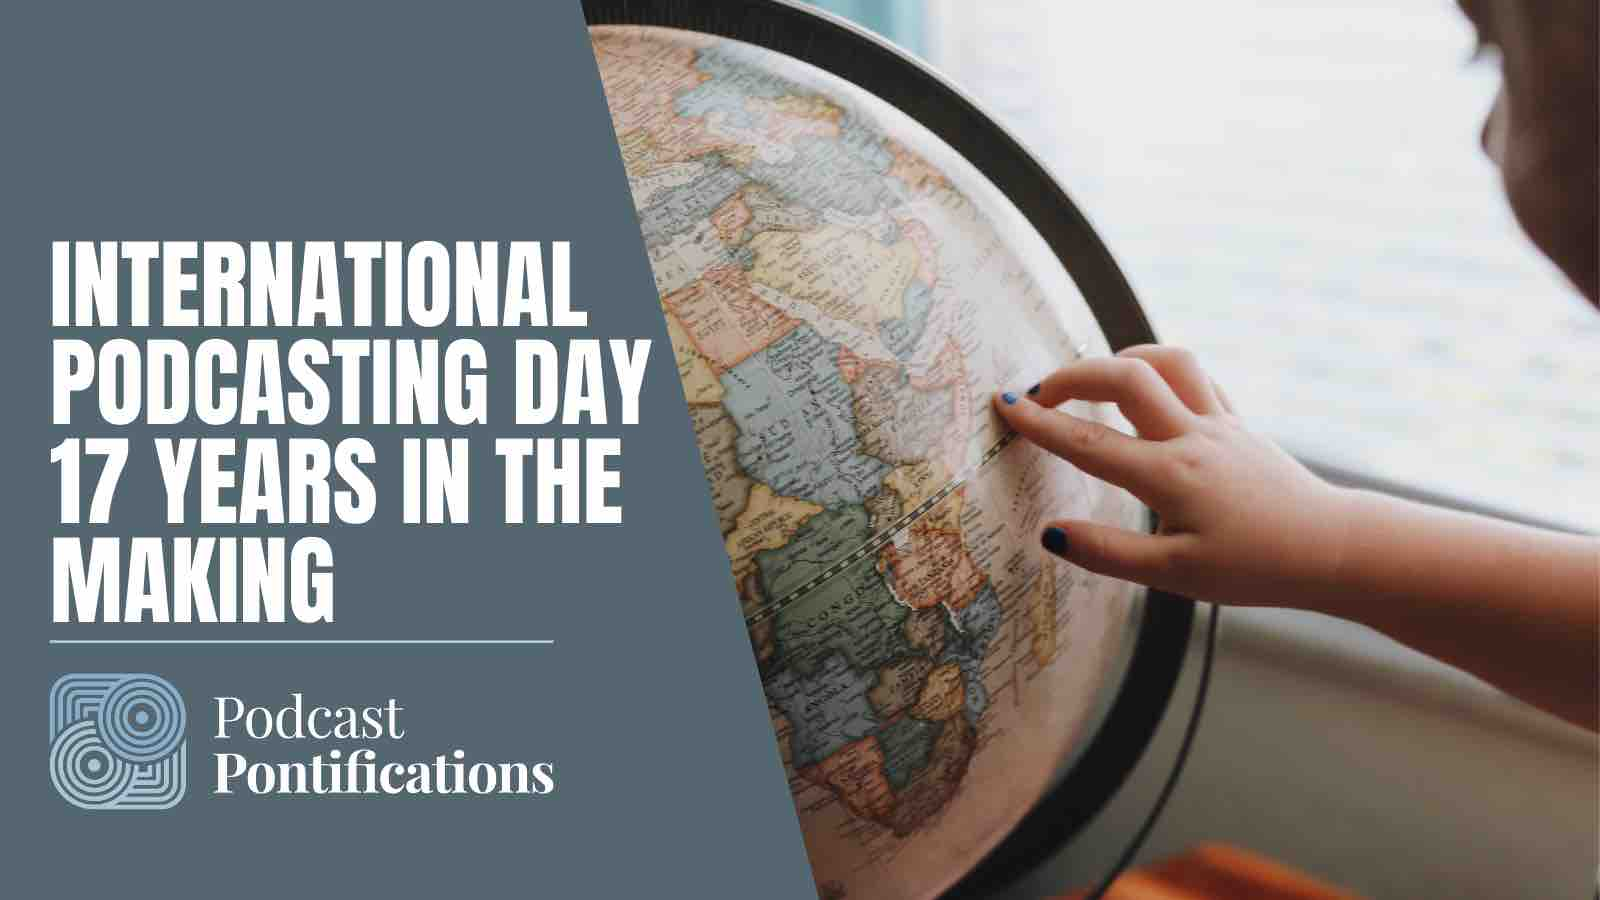 International Podcasting Day 17 Years In The Making